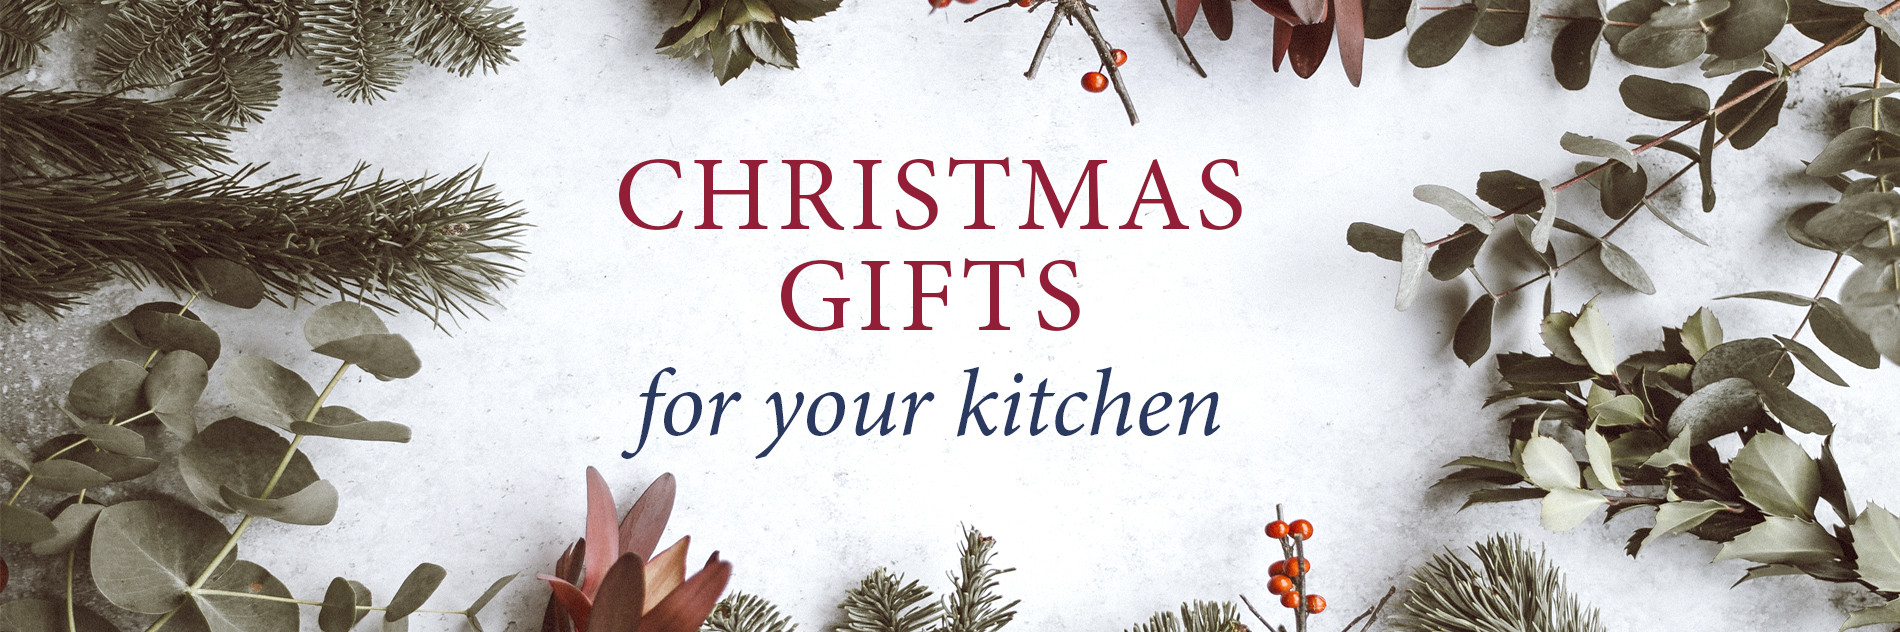 CHRISTMAS GIFTS FOR YOUR KITCHEN